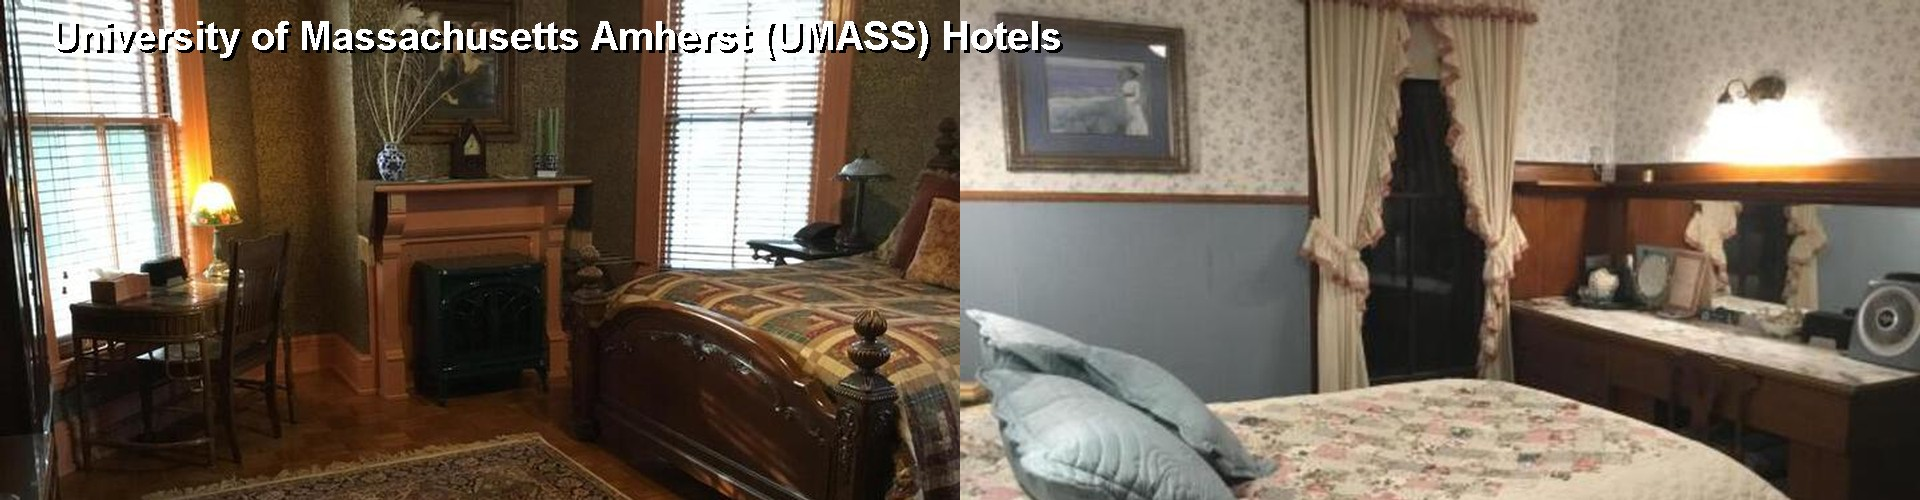 5 Best Hotels near University of Massachusetts Amherst (UMASS)